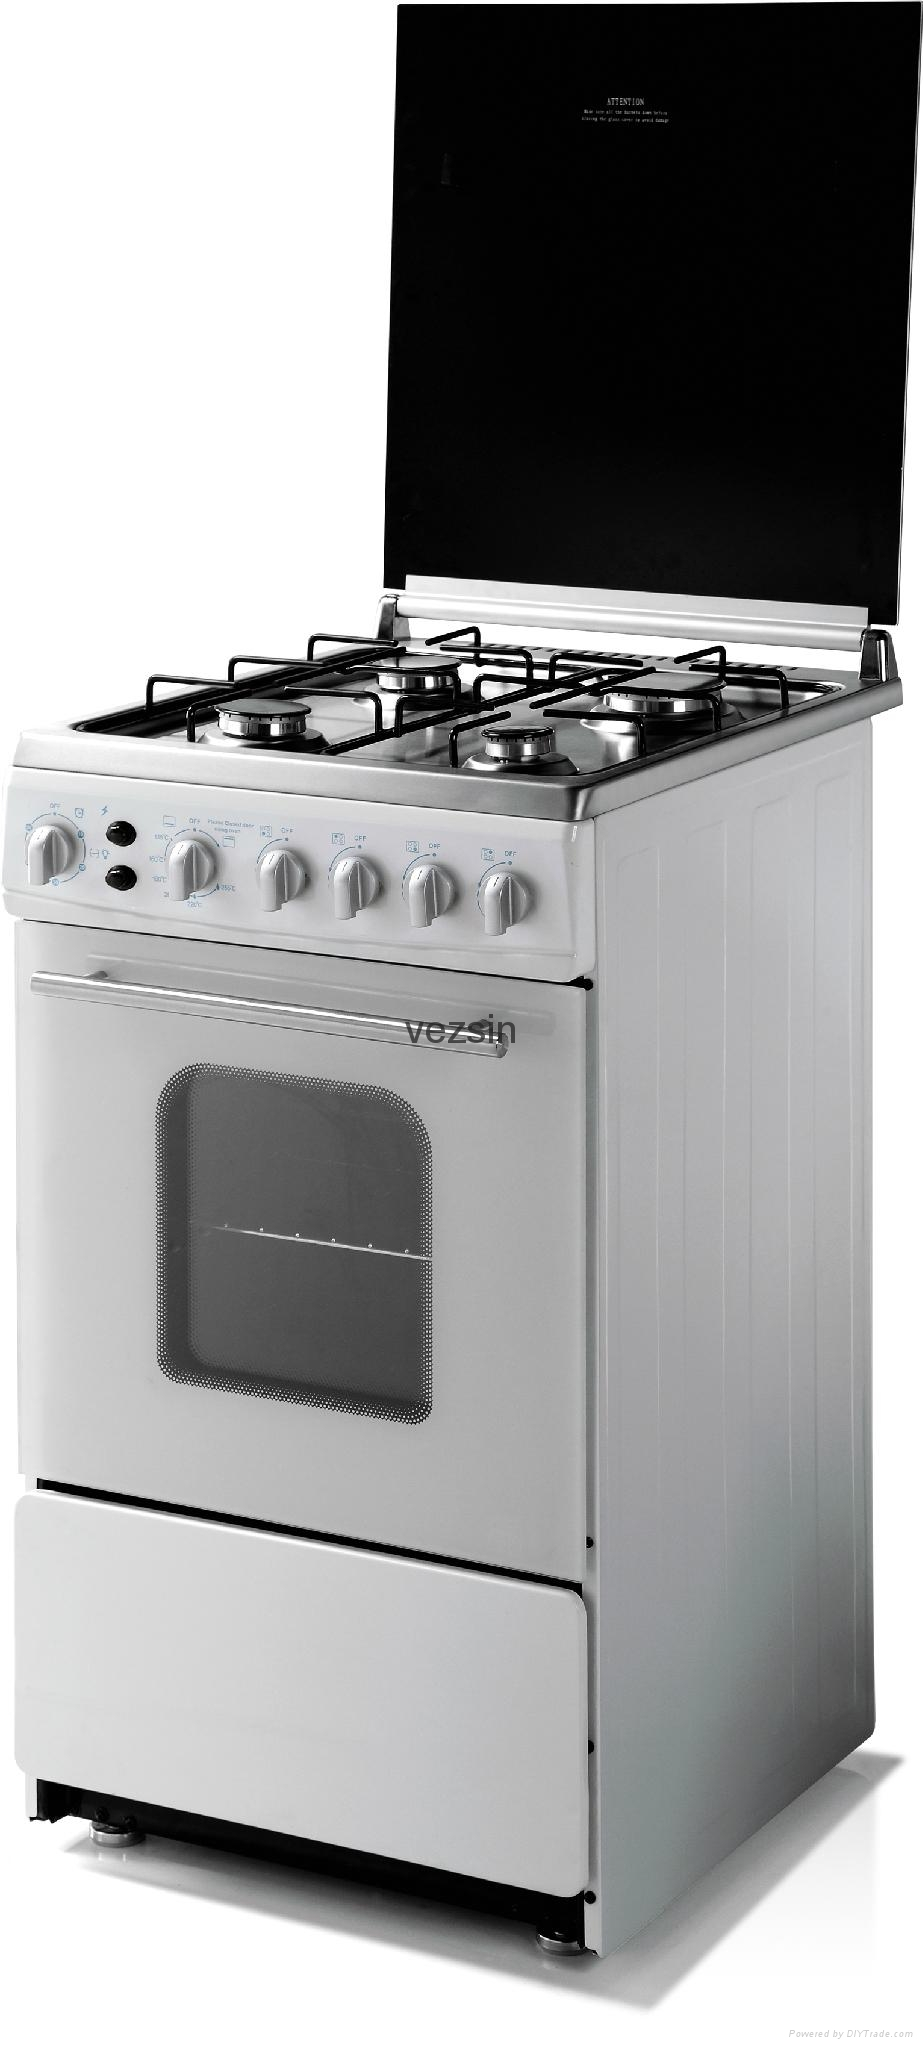 20 Inch Free Standing Gas Cooker with Oven (G20C01) 1